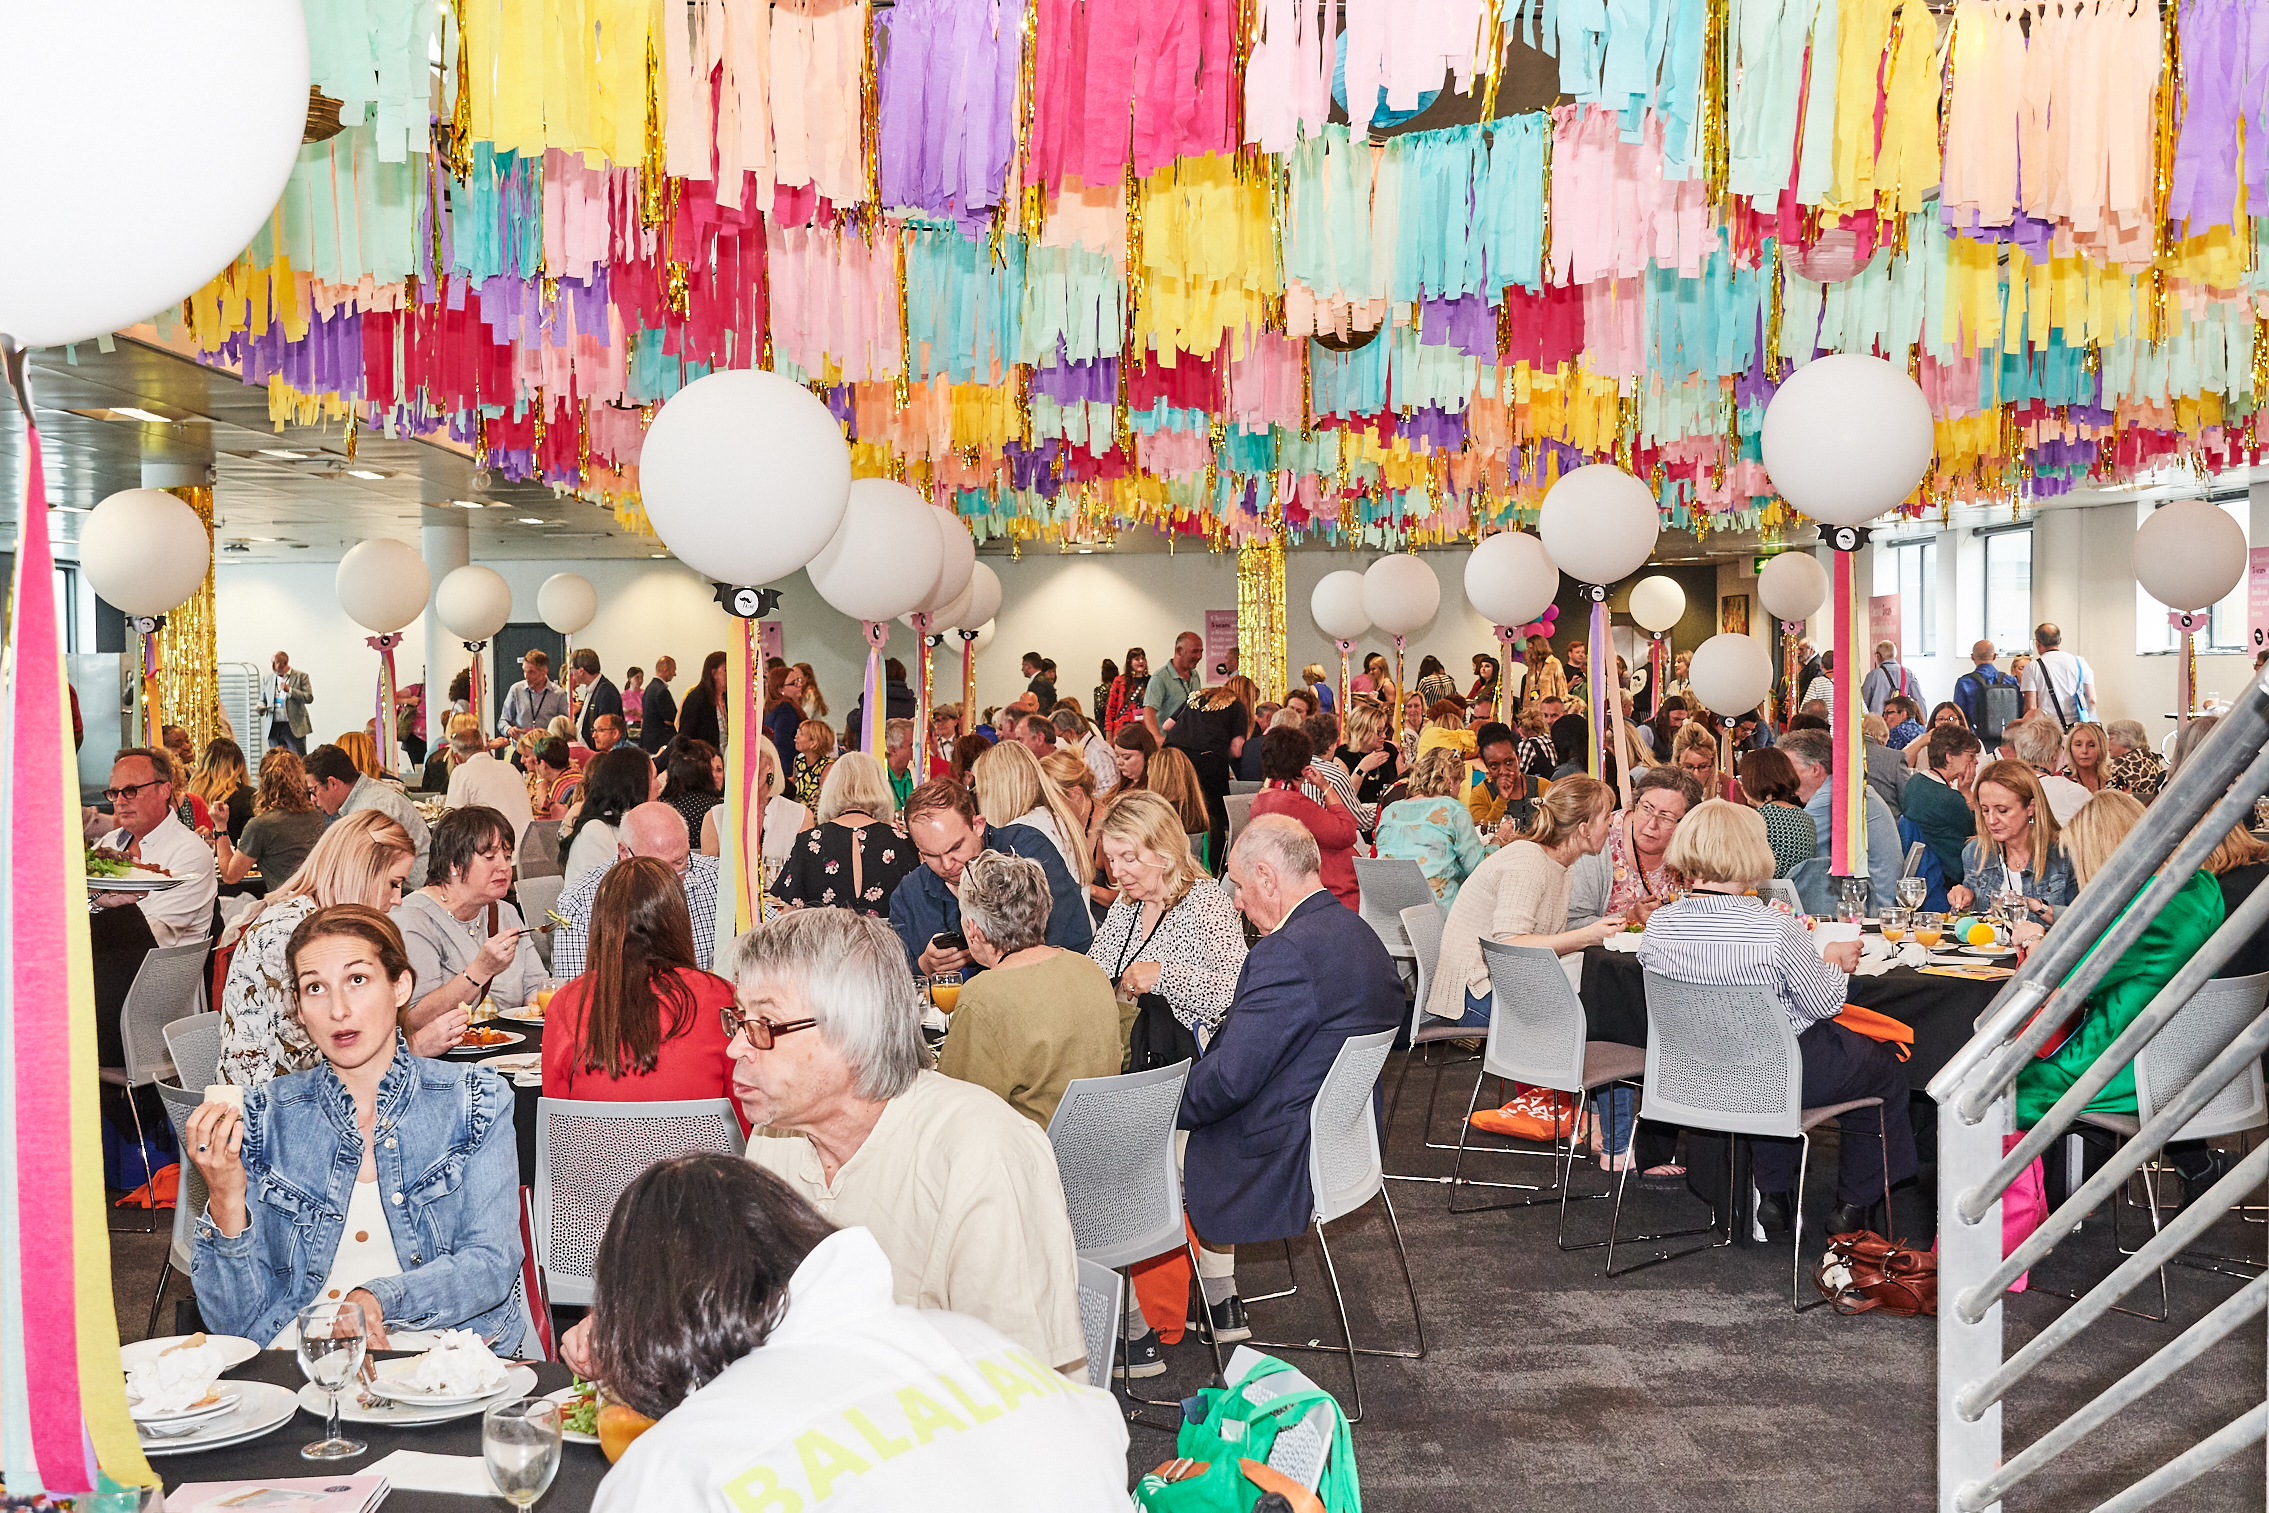 Above: With social distancing guidelines as they are, scenes like this, from the convivial lunchroom at PG Live 2019 would not be possible.